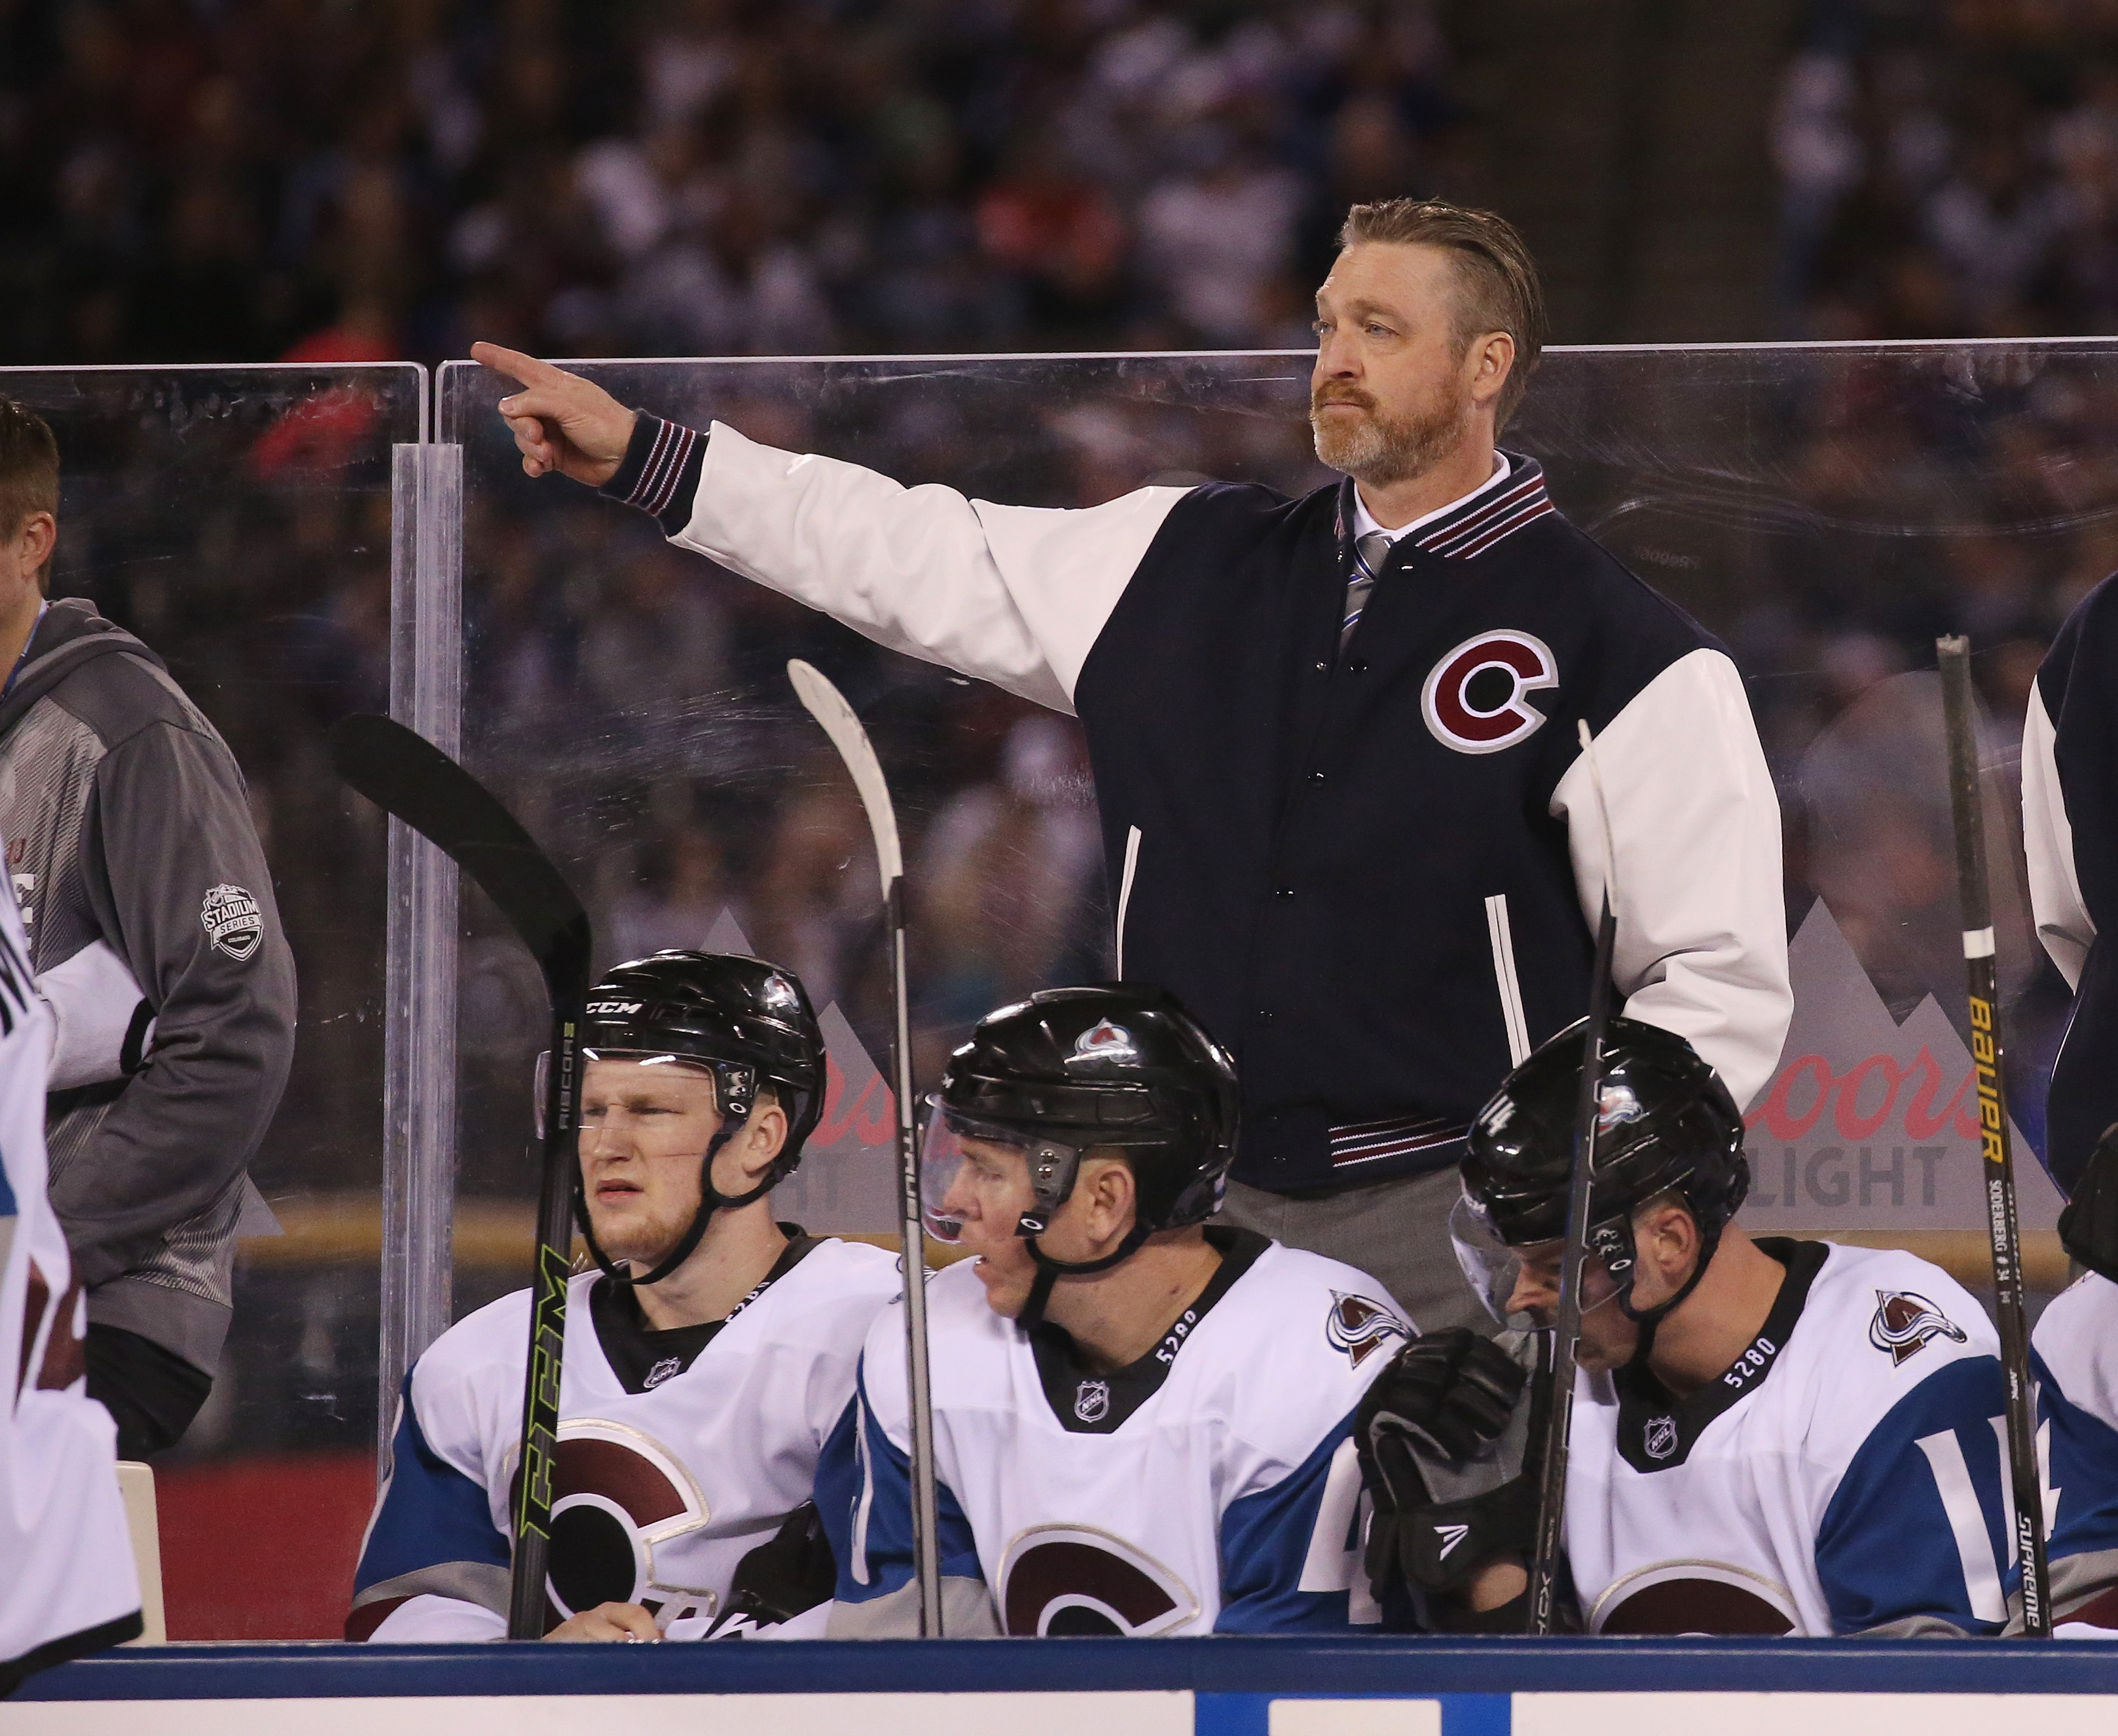 Patrick Roy of the Colorado Avalanche handles bench duties against the Detroit Red Wings at Coors Field during the 2016 Coors Light Stadium Series game on February 27, 2016. (credit: Doug Pensinger/Getty Images)